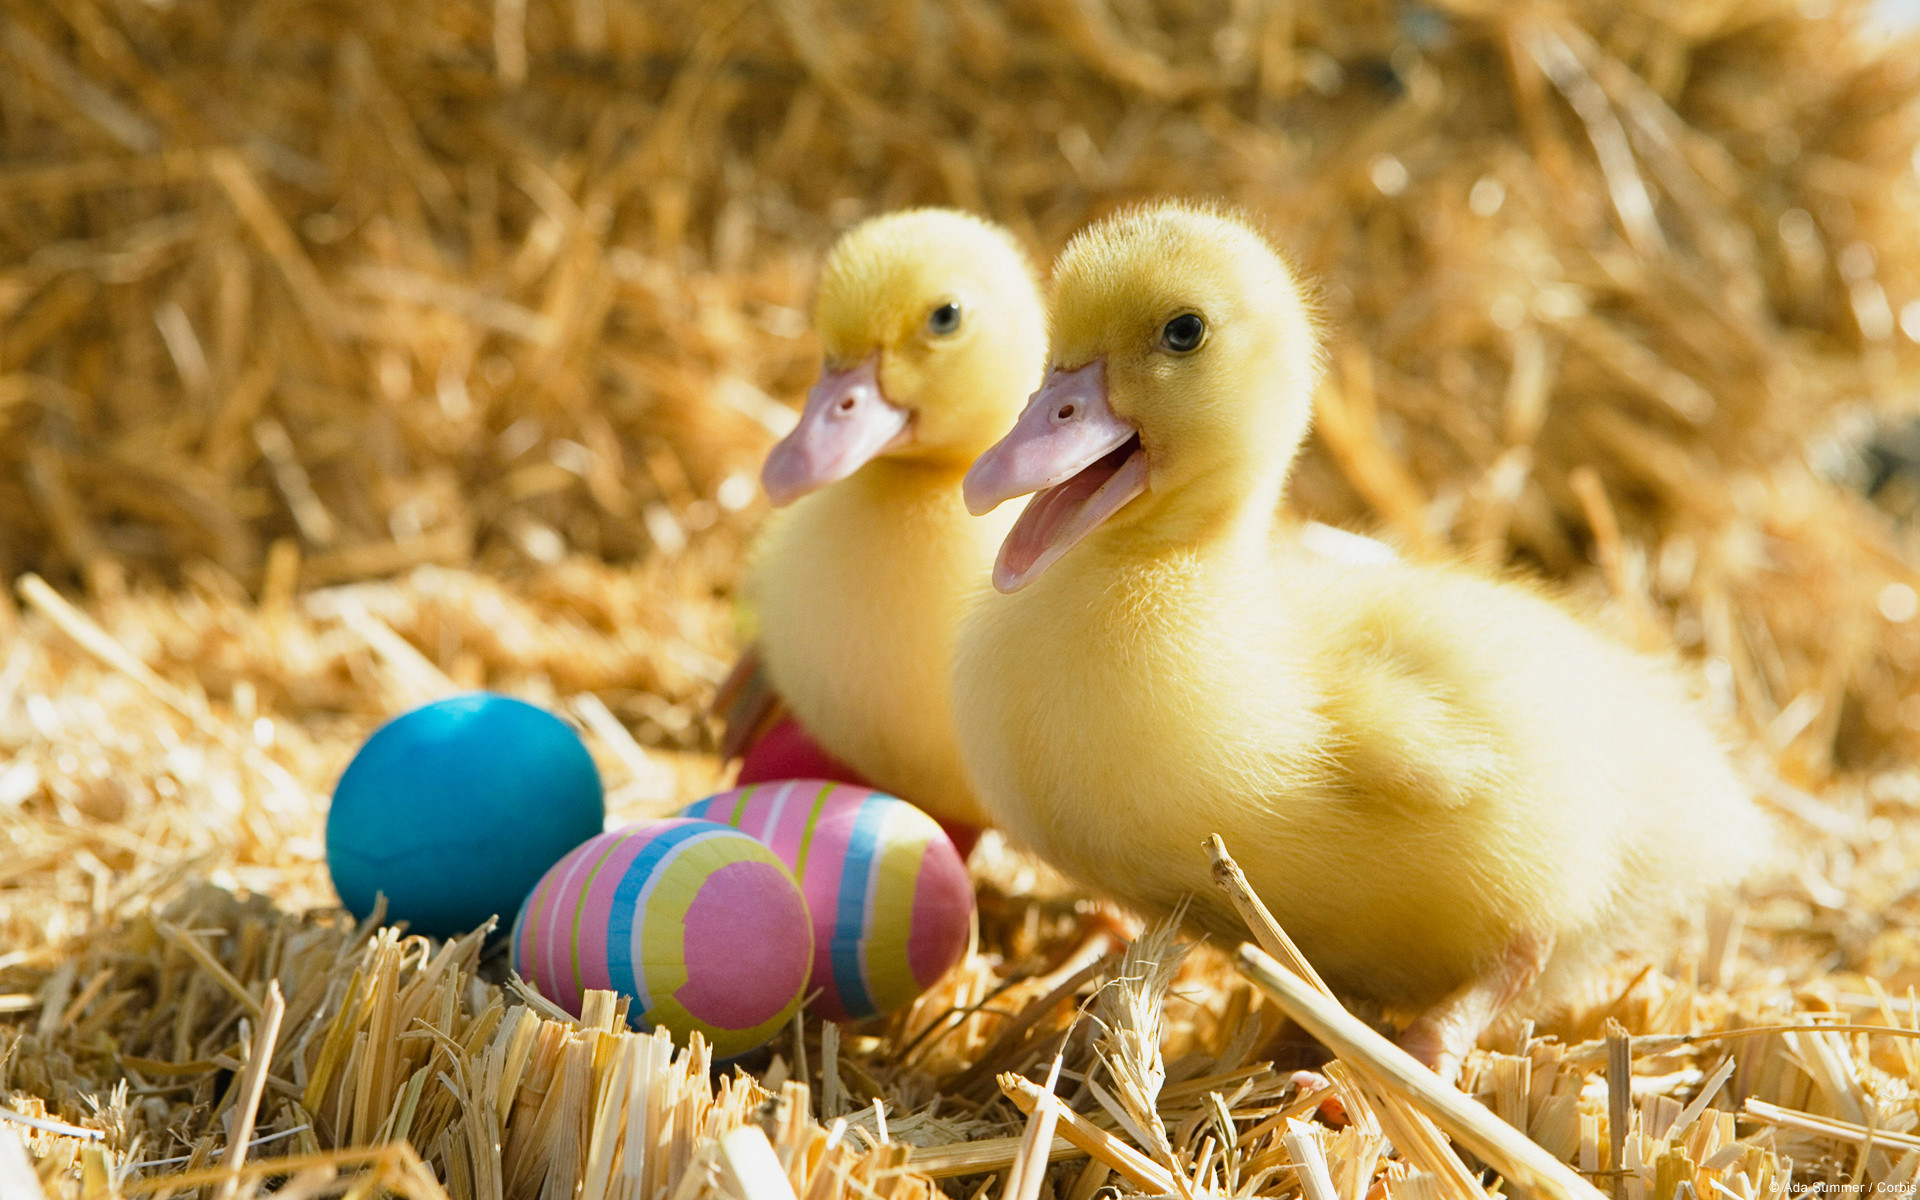 Ducklings and Easter Eggs wallpapers, Ducklings and Easter Eggs stock  photos,